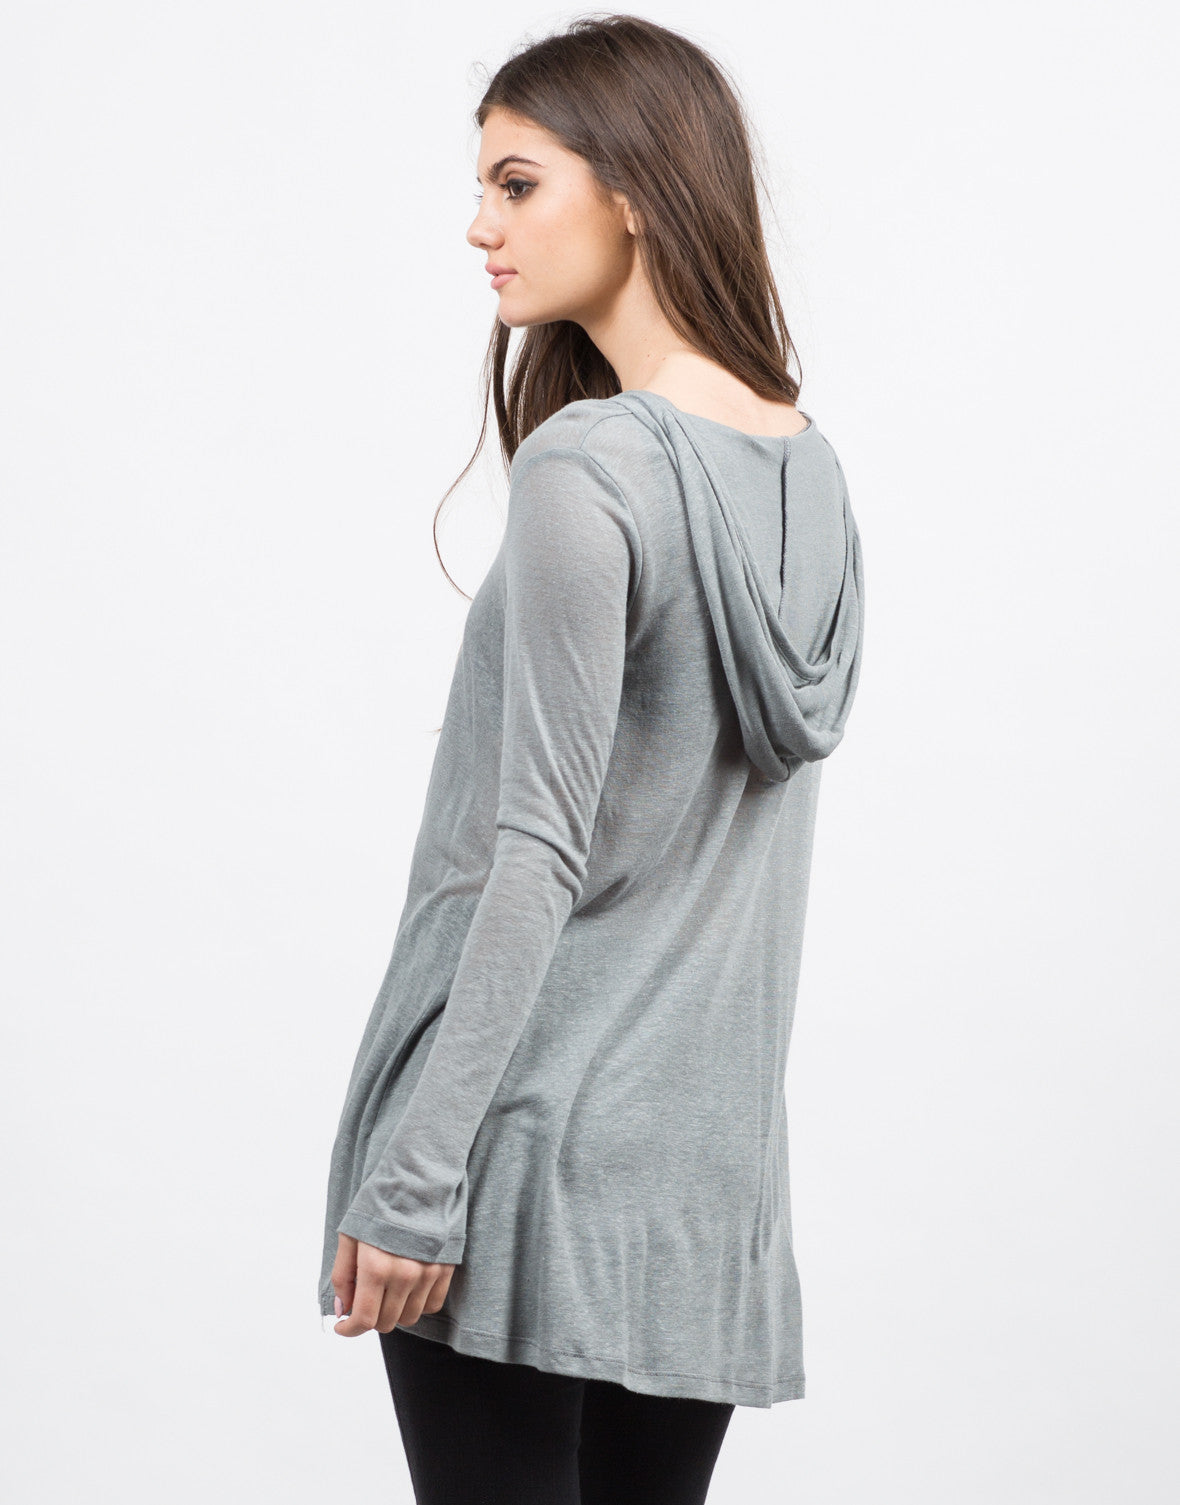 Back View of Hooded Long Sleeve Henley Top